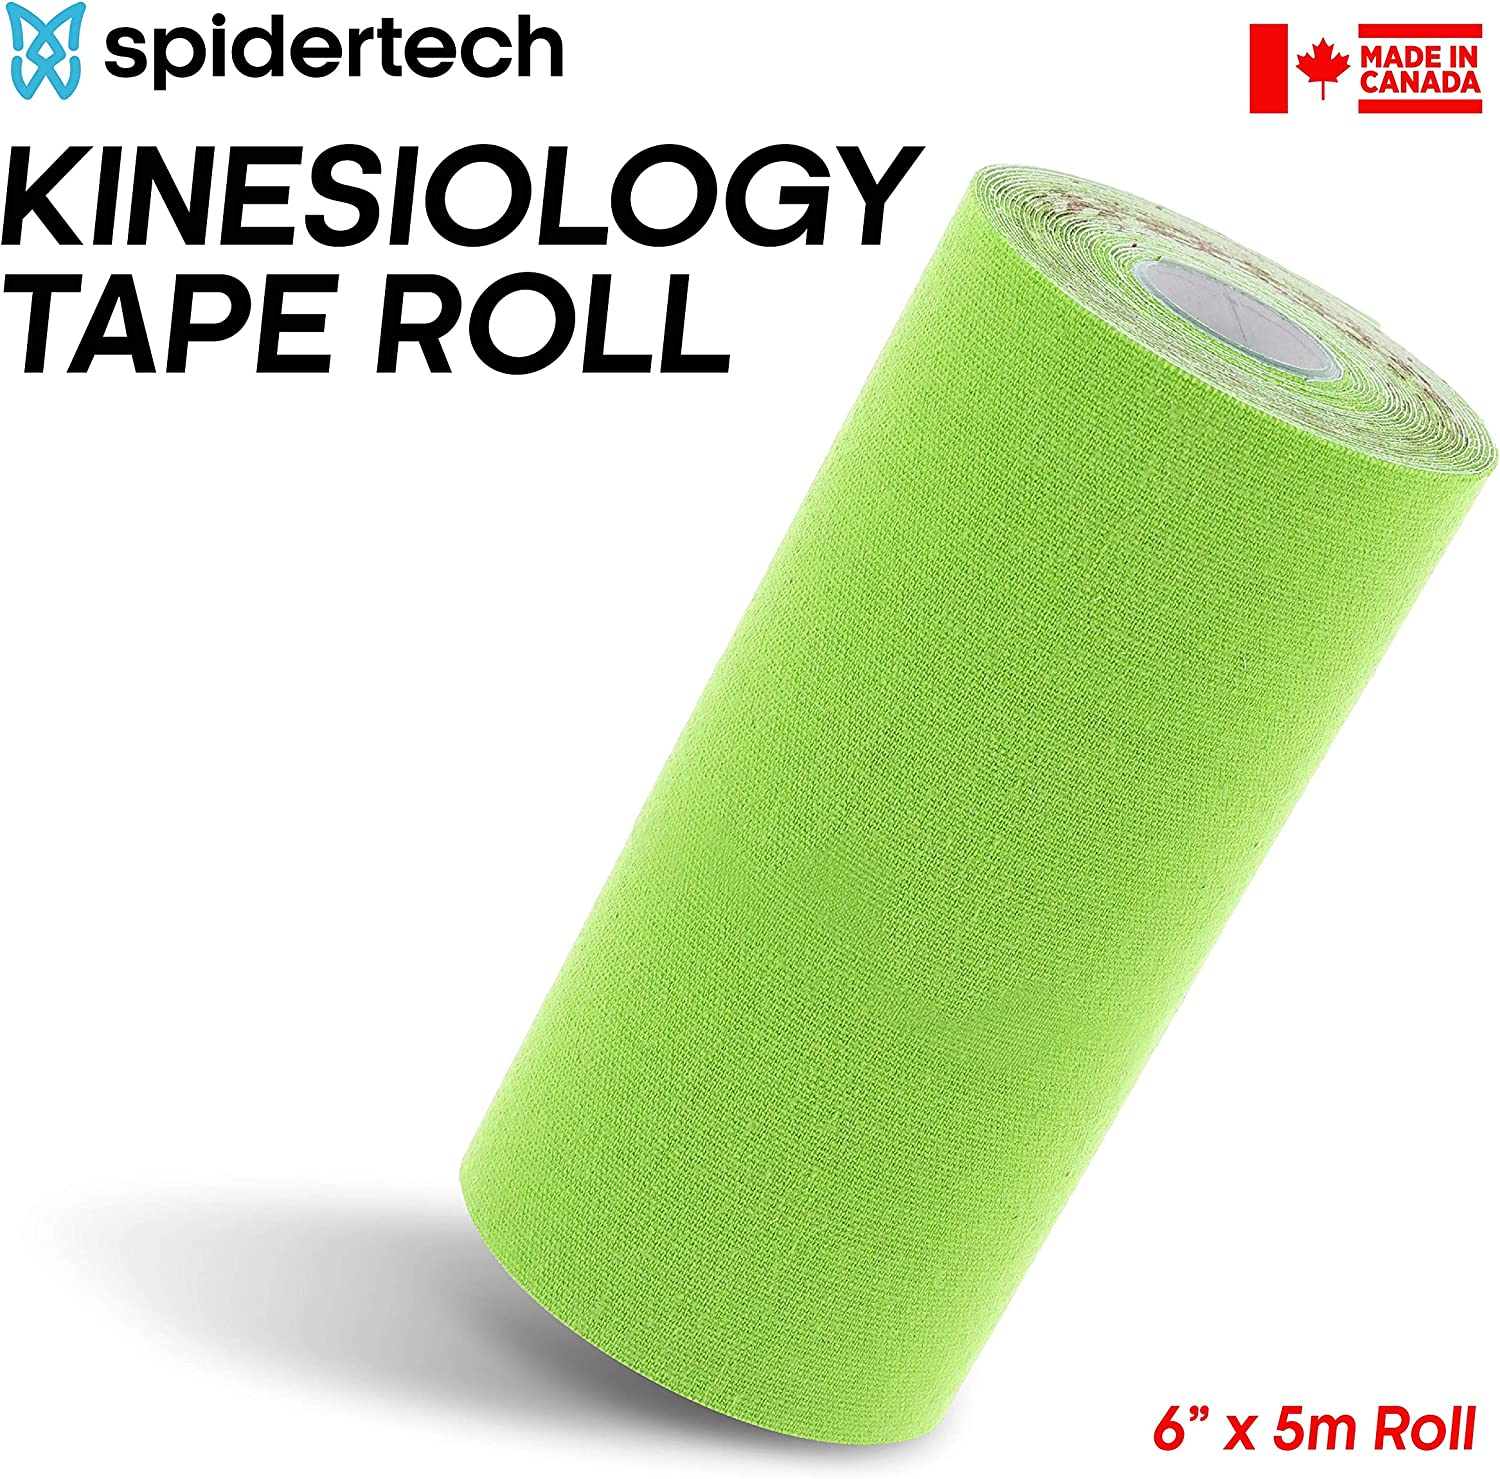 Preferred by Athletes High-Grade Water-Resistant Material Black Help Re-Train Muscles SpiderTech Therapeutic XXL Kinesiology Tape Roll Reduce Pain and Inflammation 6 inch - 152 mm x 5 m